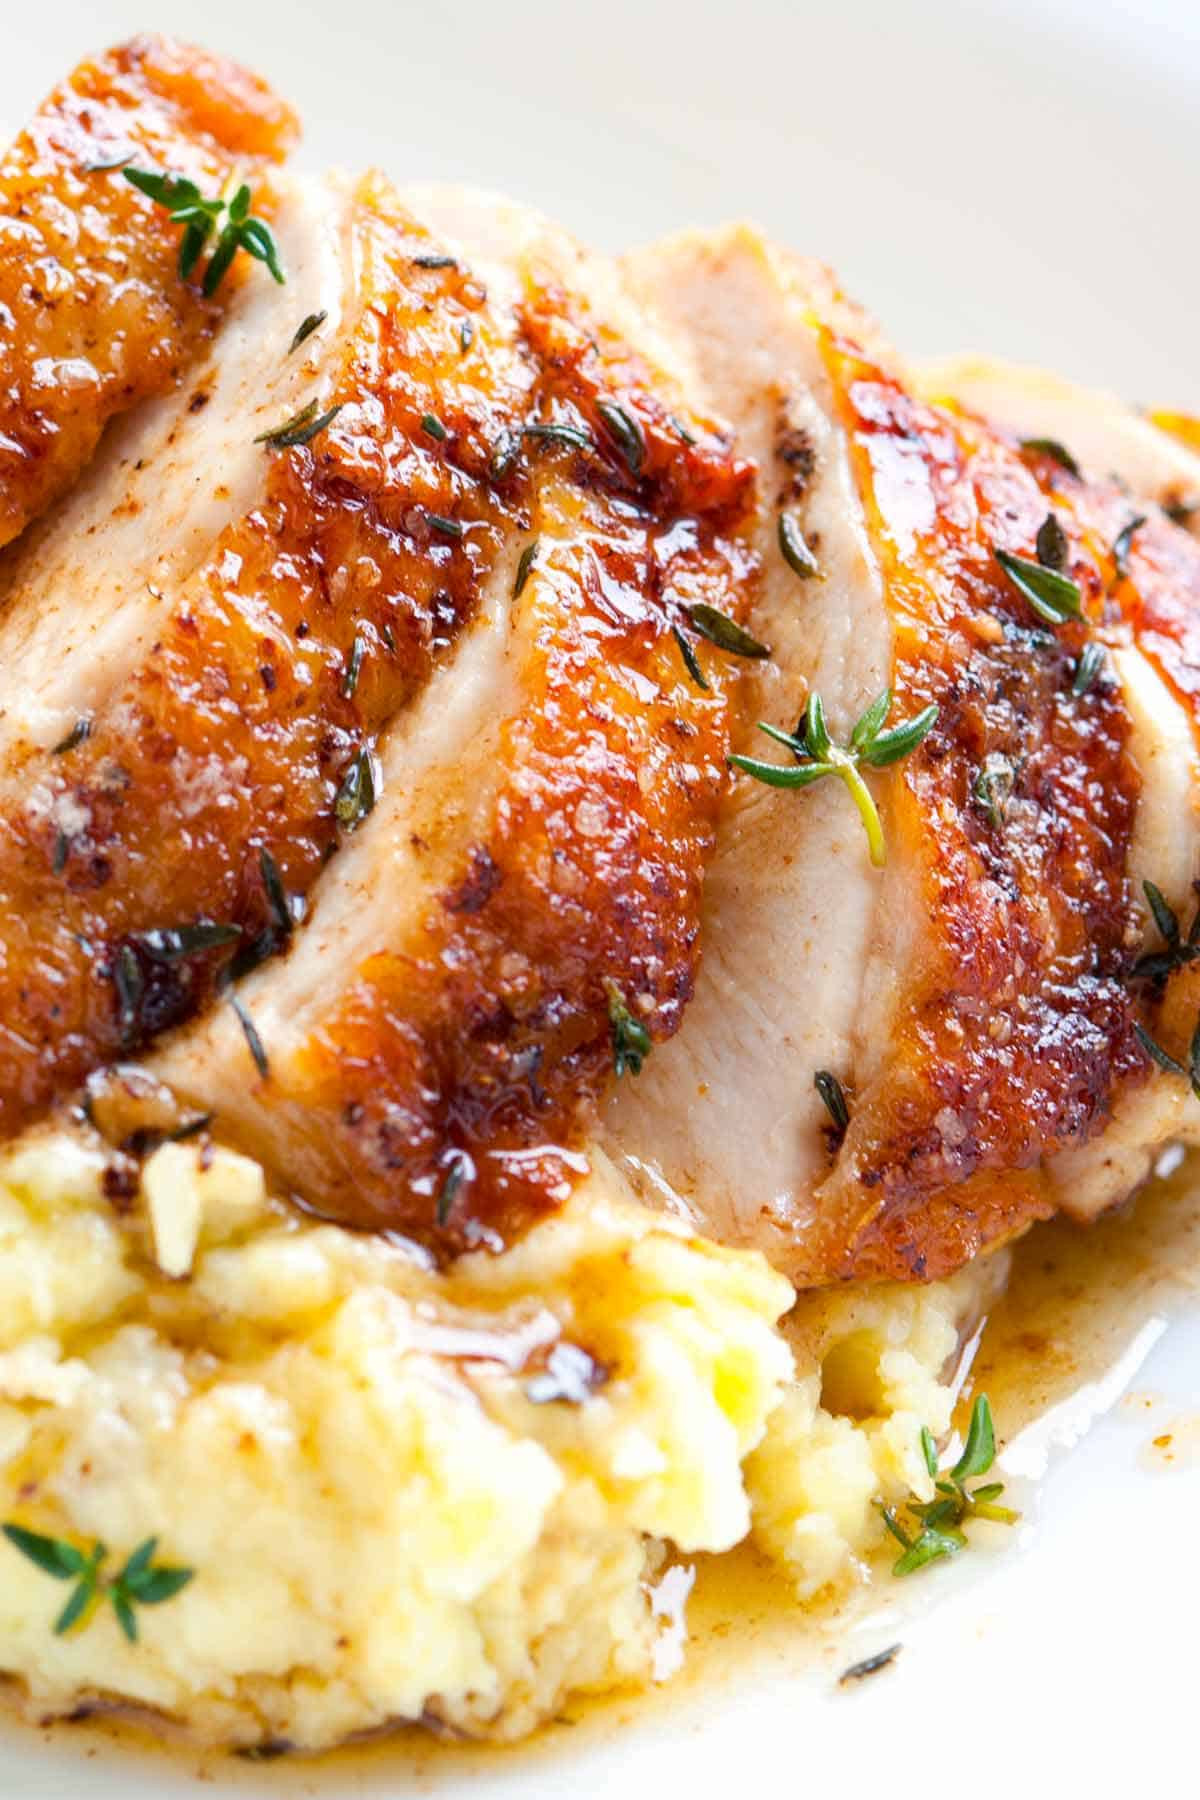 Recipes With Chicken Breasts  Easy Pan Roasted Chicken Breasts with Thyme